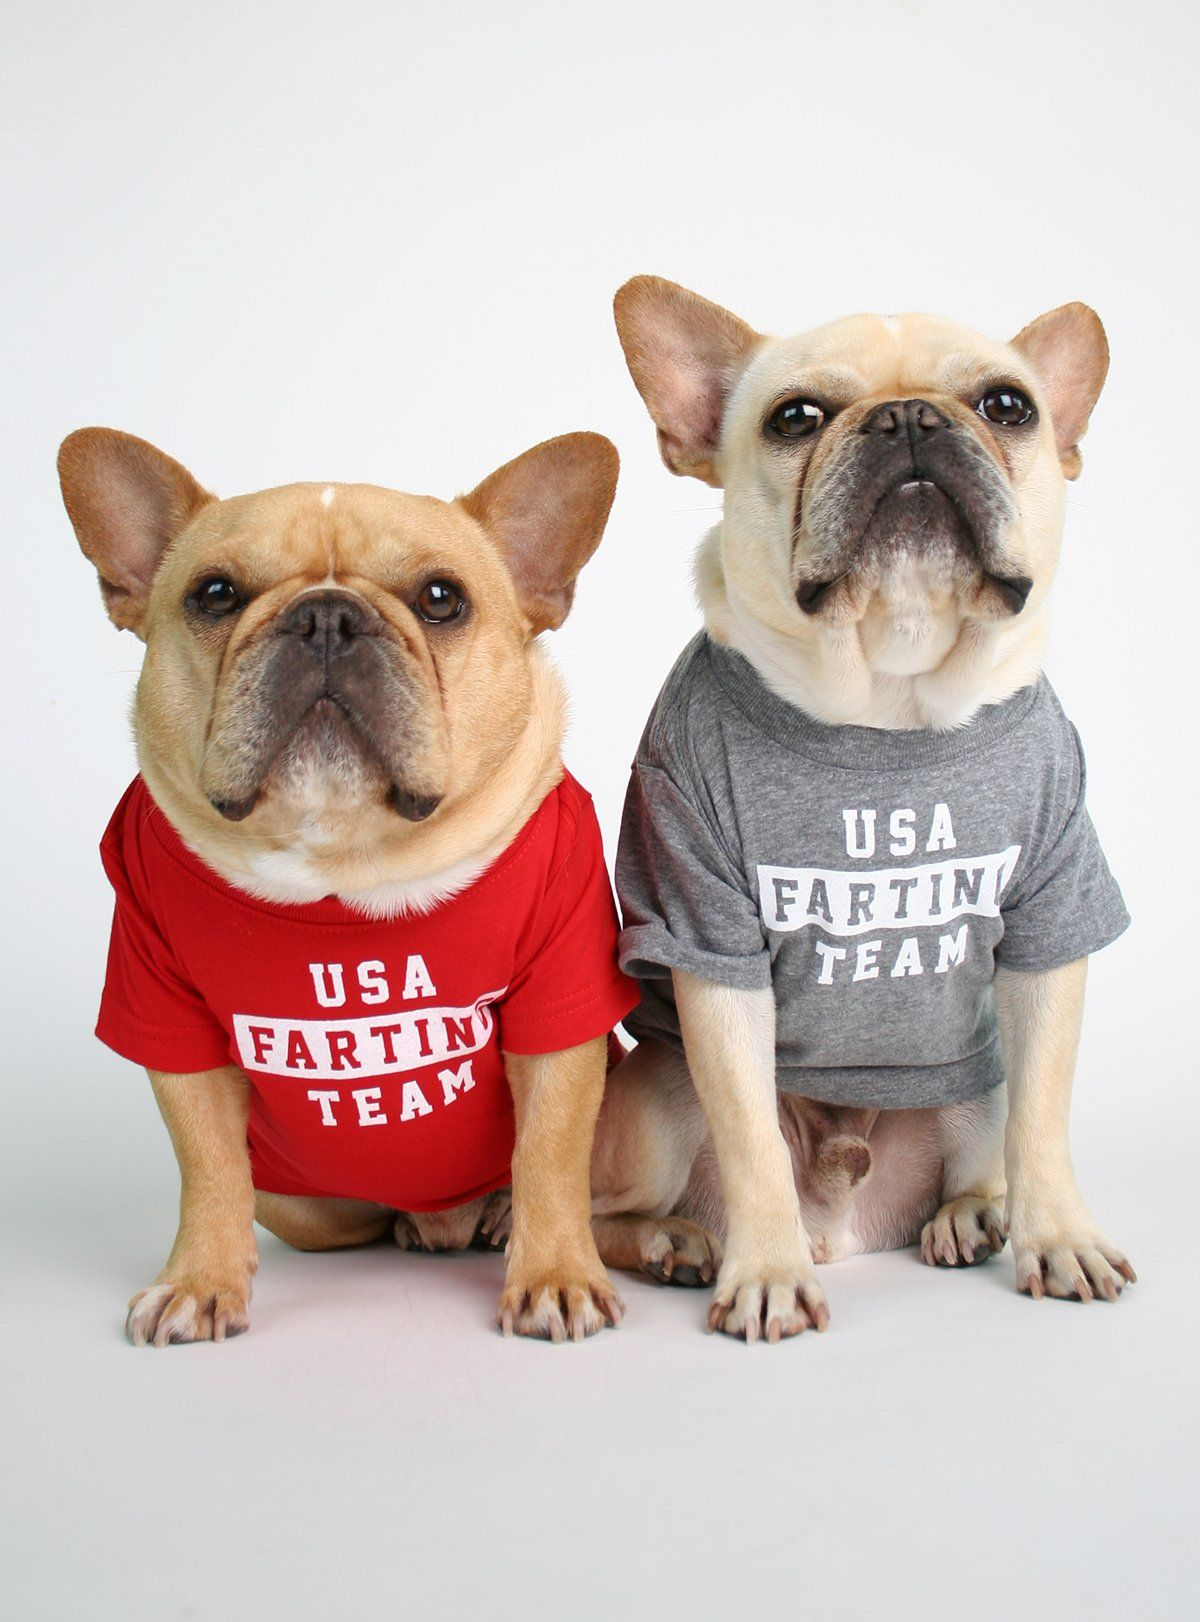 Usa Farting Team Dog Tee French Bulldog Dog Dogs Tee Dog Shirt